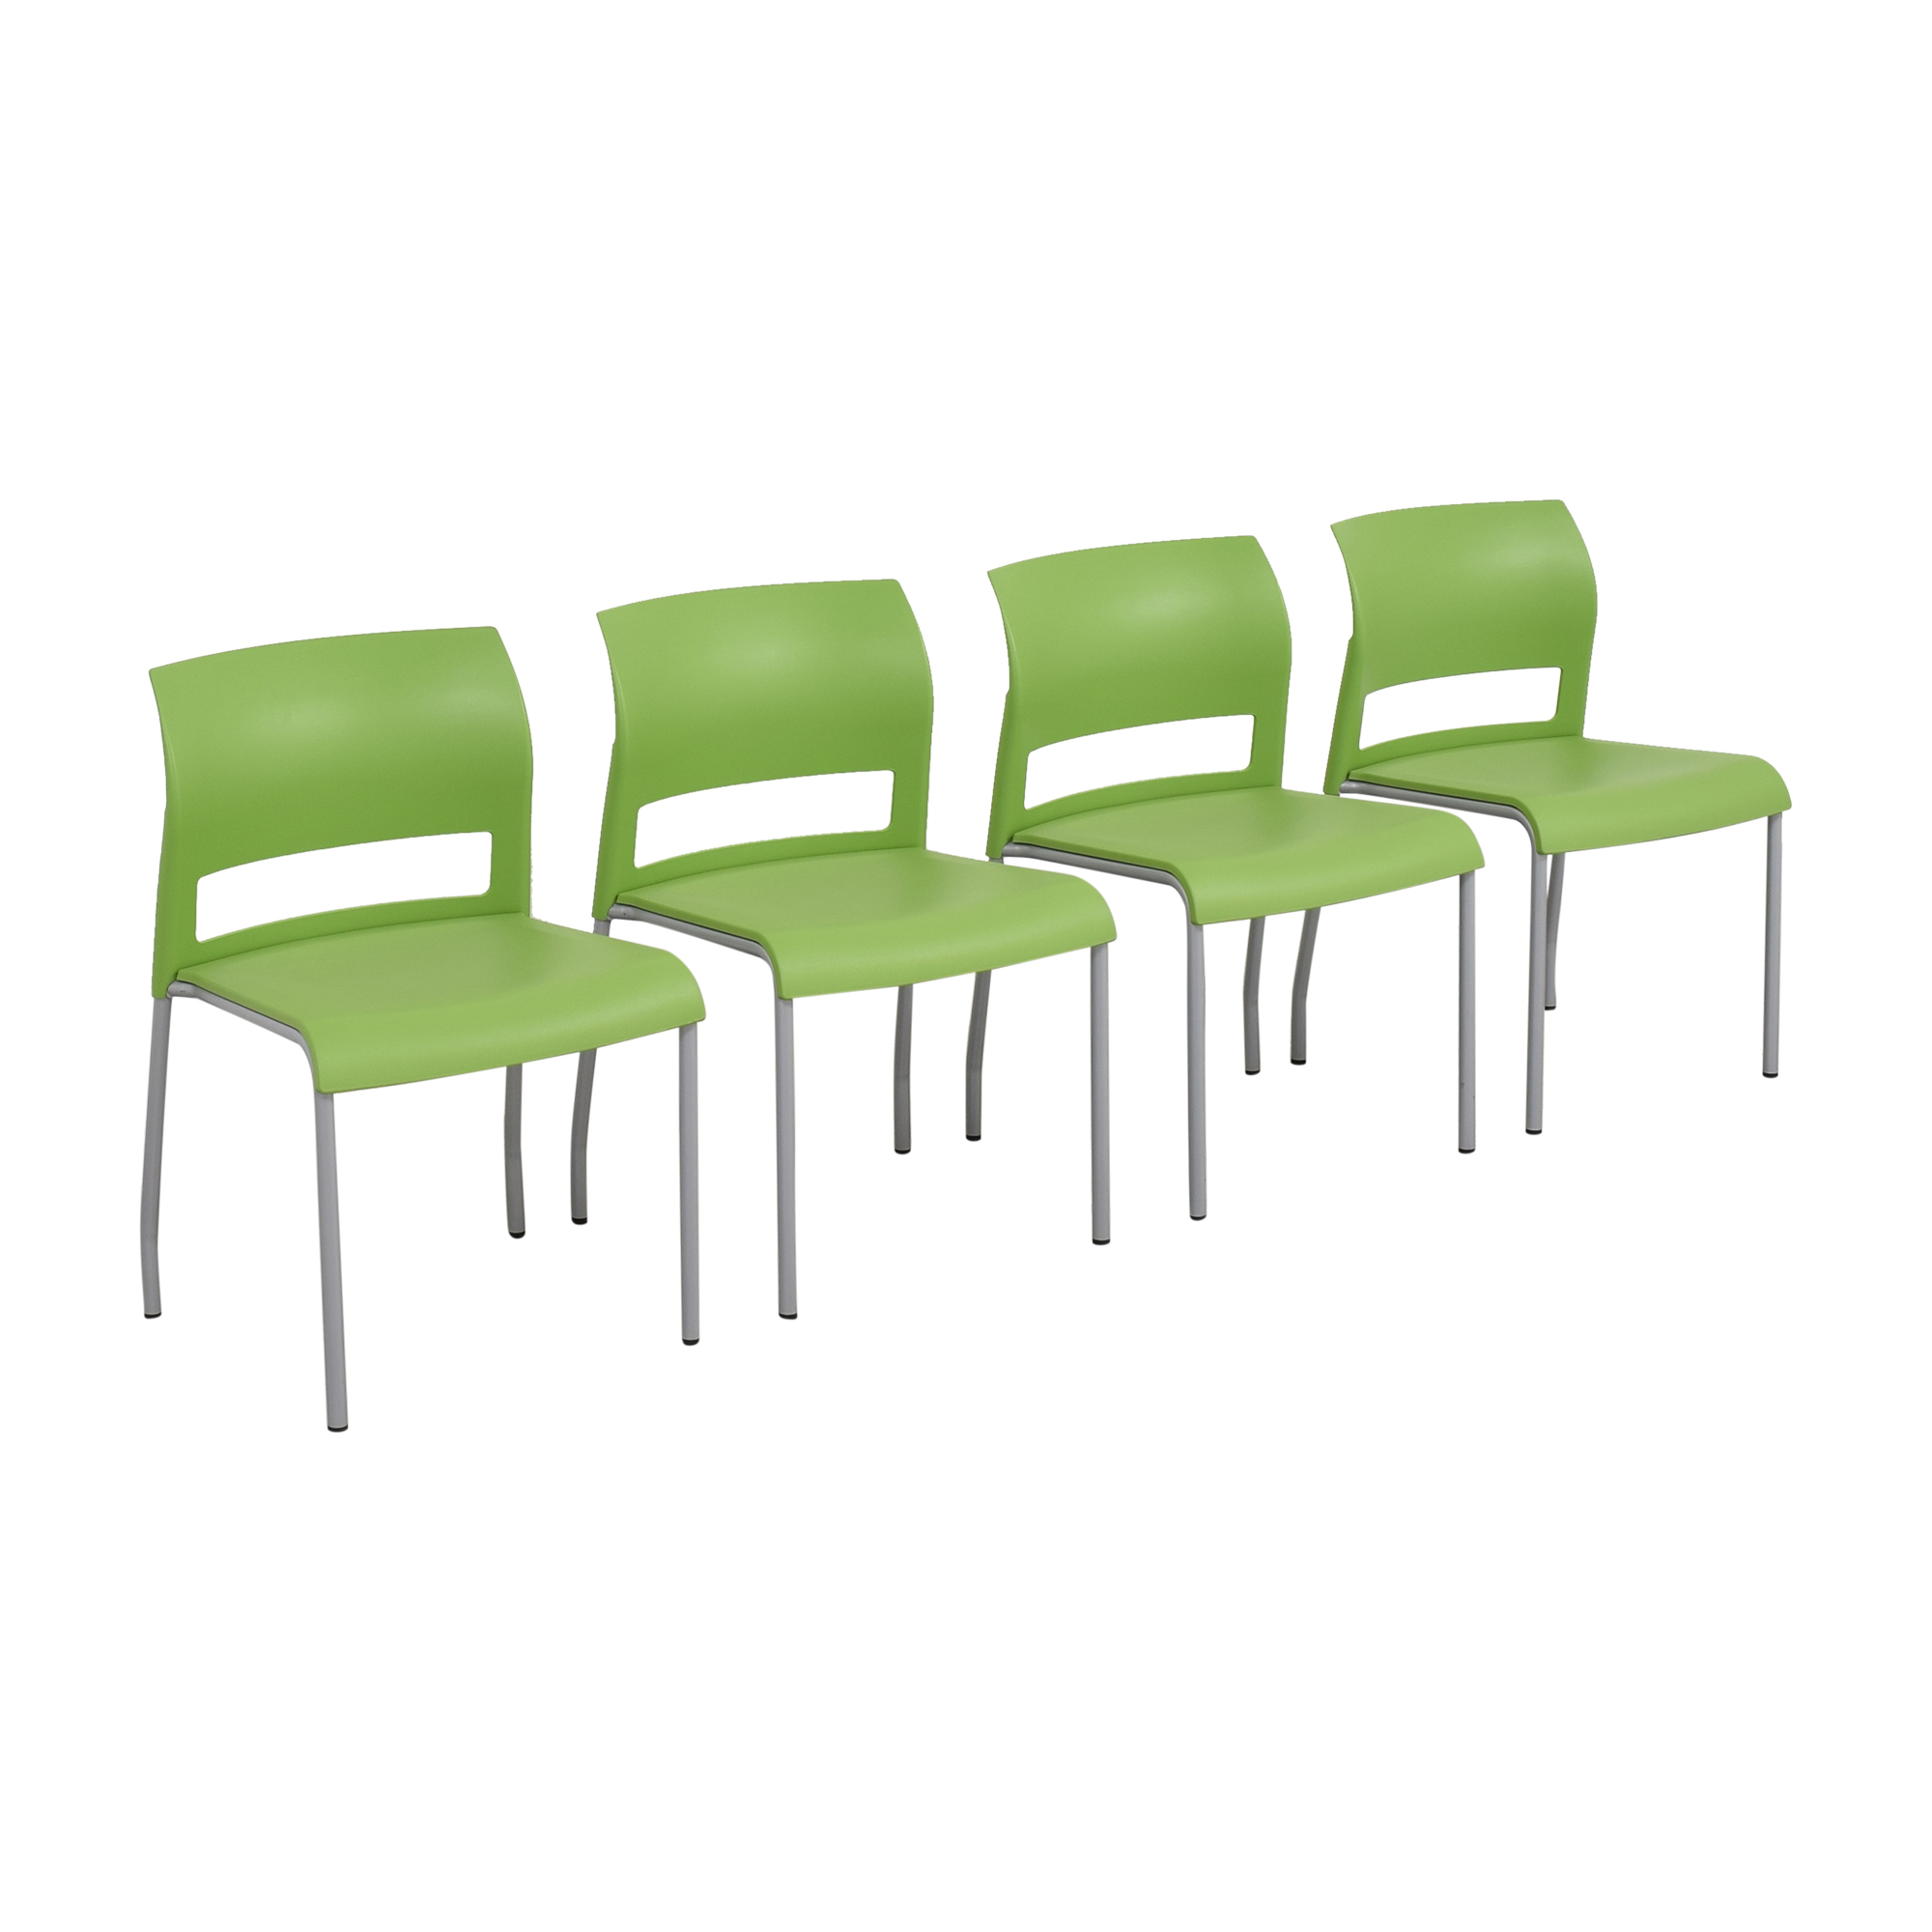 Steelcase Steelcase Move Stackable Chairs ct